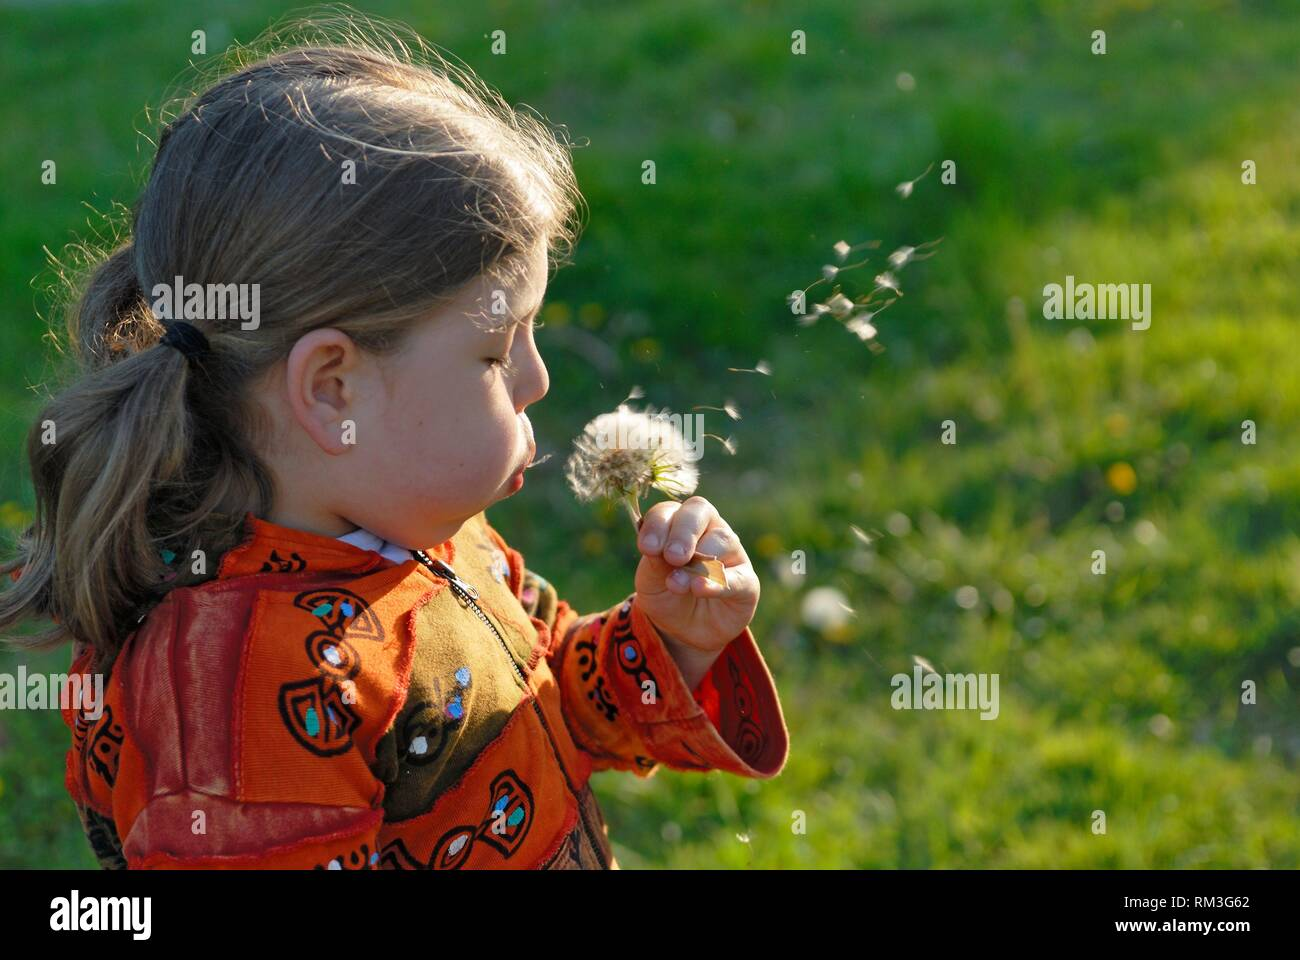 little girl blowing on seed head of a dandelion flower, France, Europe. - Stock Image